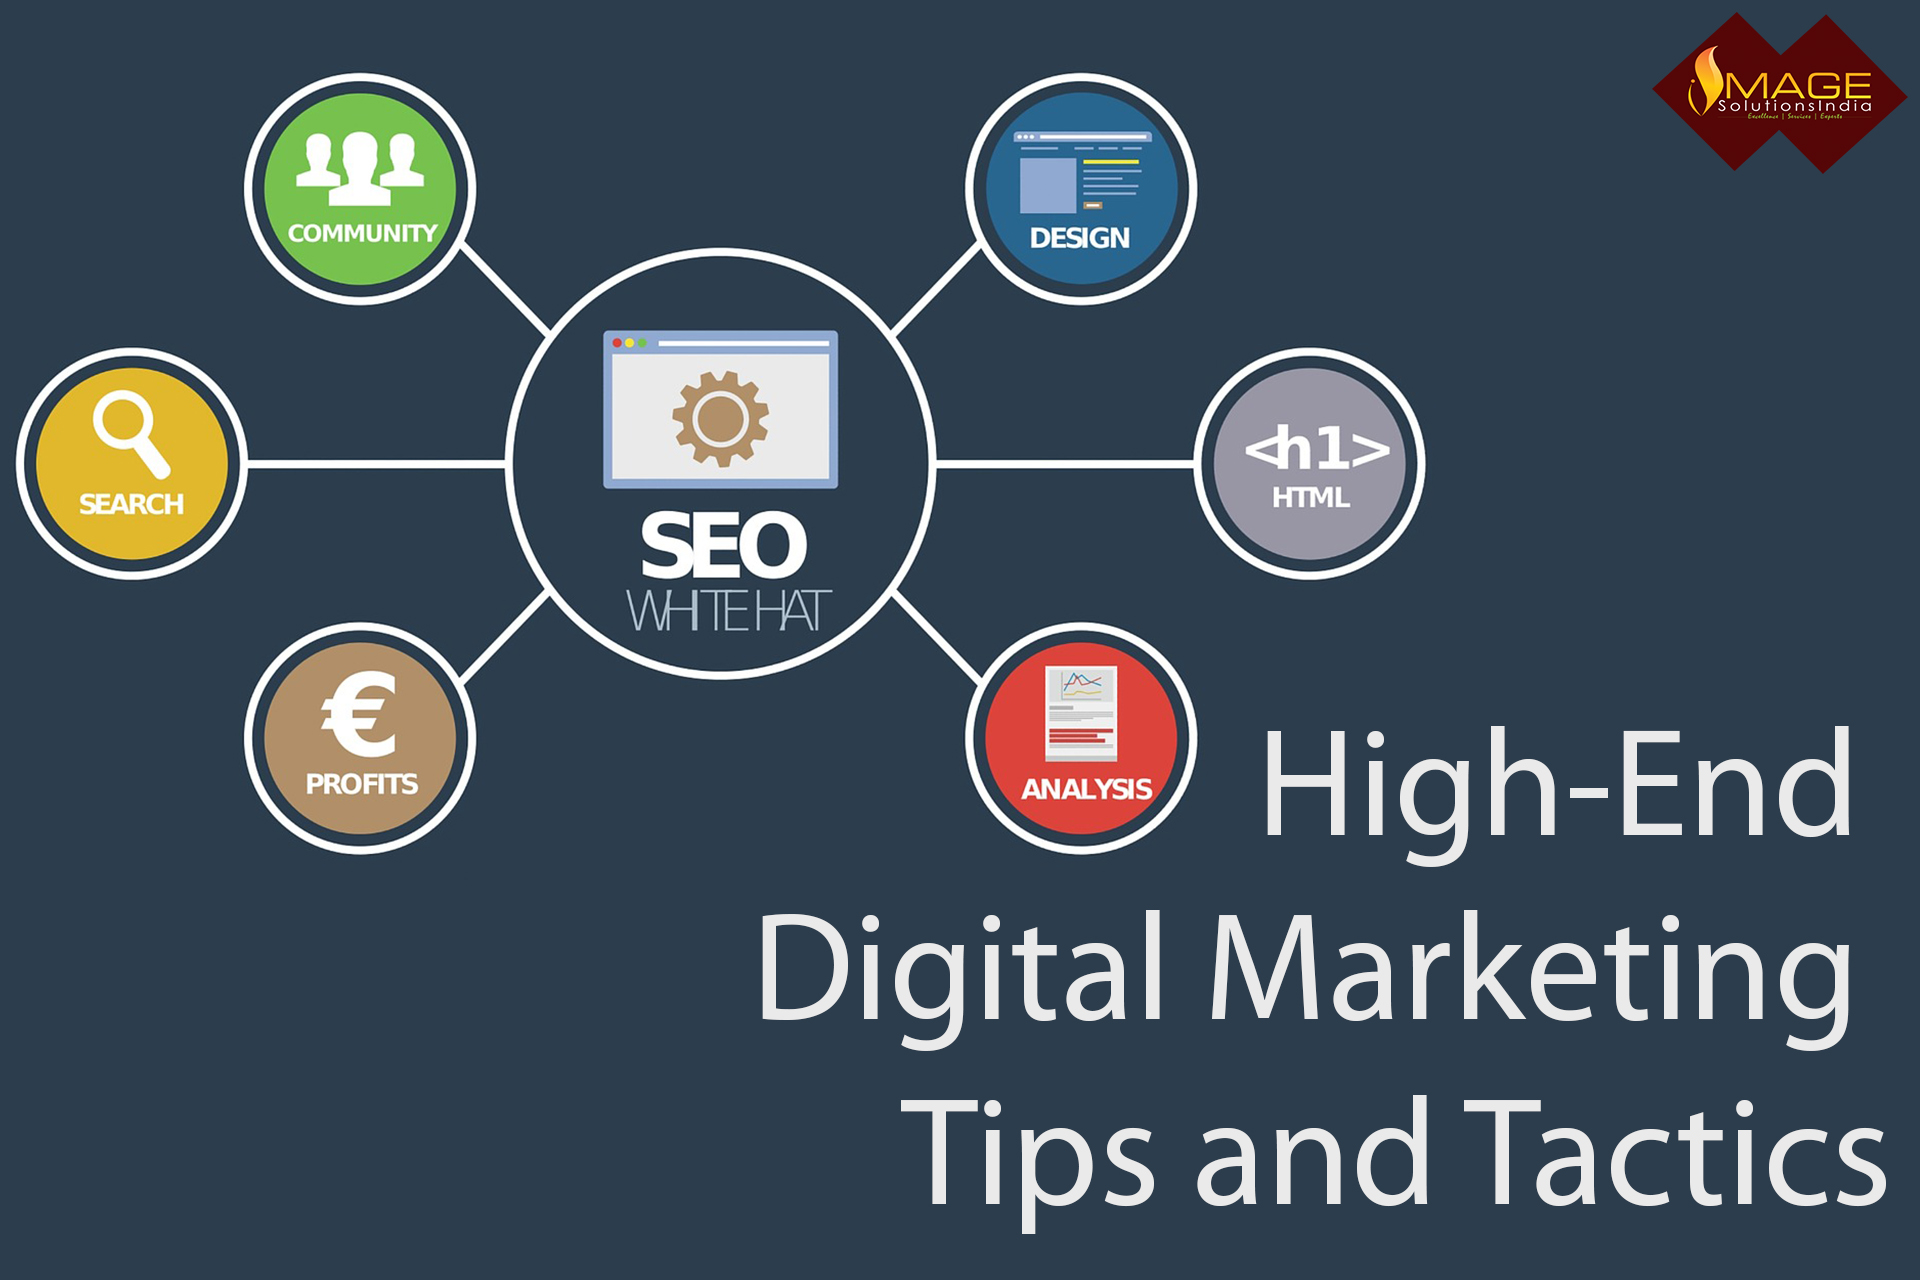 High-End Digital Marketing Tips and Tactics